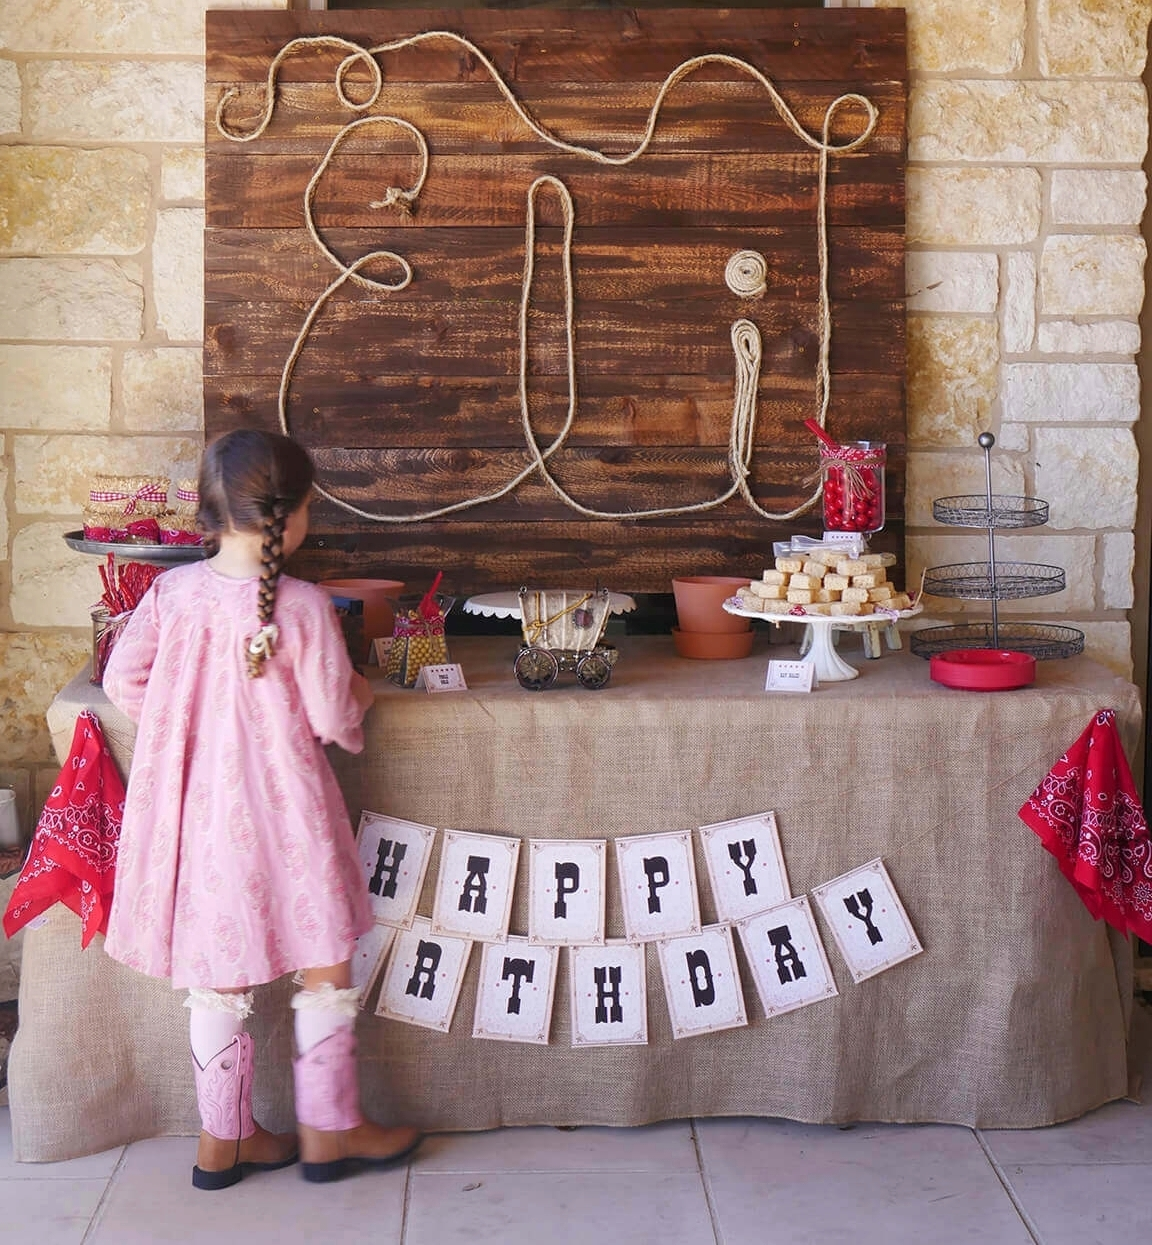 Personalized Rope Sign for a Wild West Birthday Party. Printable Happy Birthday banner hangs over the burlap table linen. Styled by Carolina from MINT Event Design / www.minteventdesign.com #wildwest #cowboy #birthdayparty #partyideas #desserttable #birthdaybanner